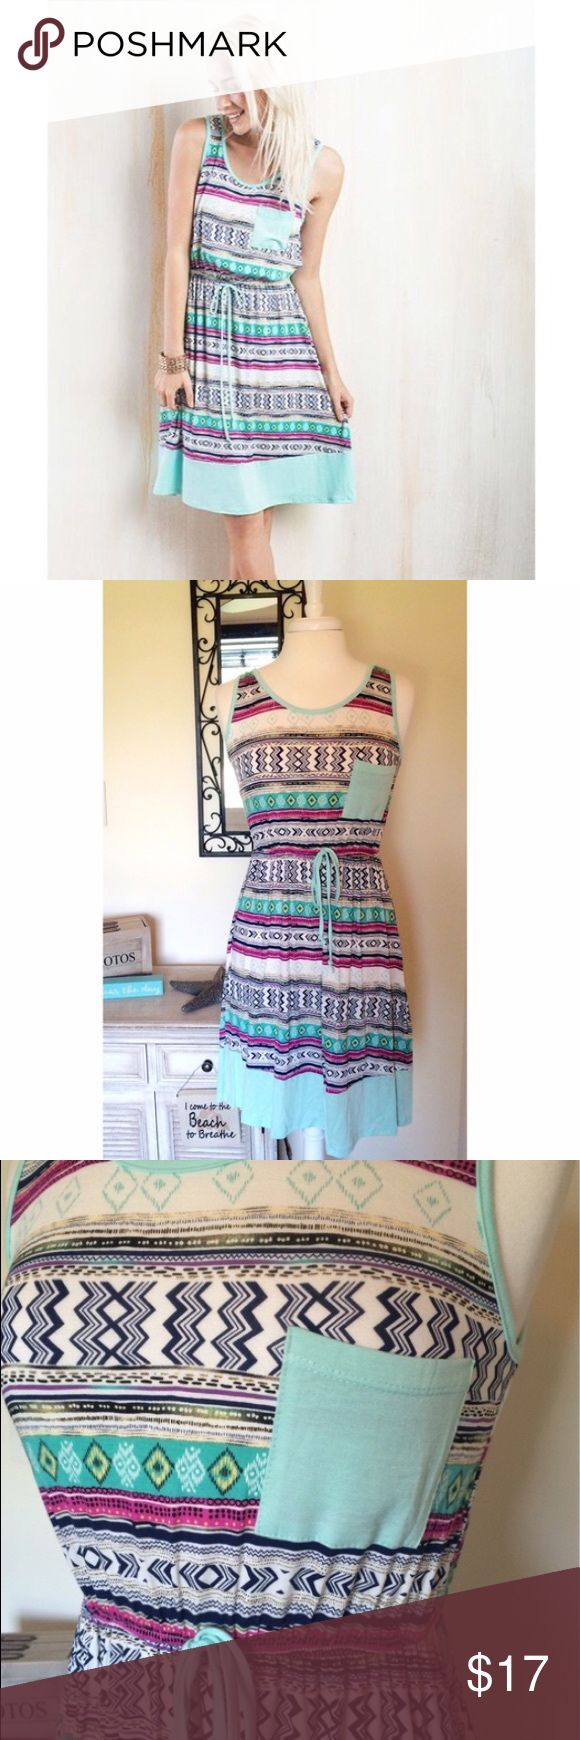 Aztec tribal print knit dress nwot mint This dress is soooo pretty, but unfortunately I just never have the occasion to wear it. It is a flowy knit fabric and flattering silhouette with drawstring detail at waist. Size Large. I removed the tags when I tried it on, but it has never been worn. Please help me find this beauty a good home!! 🚫trades. Save 15% when you bundle!! Note: pics are not mine—this is a reposh. Dresses Midi